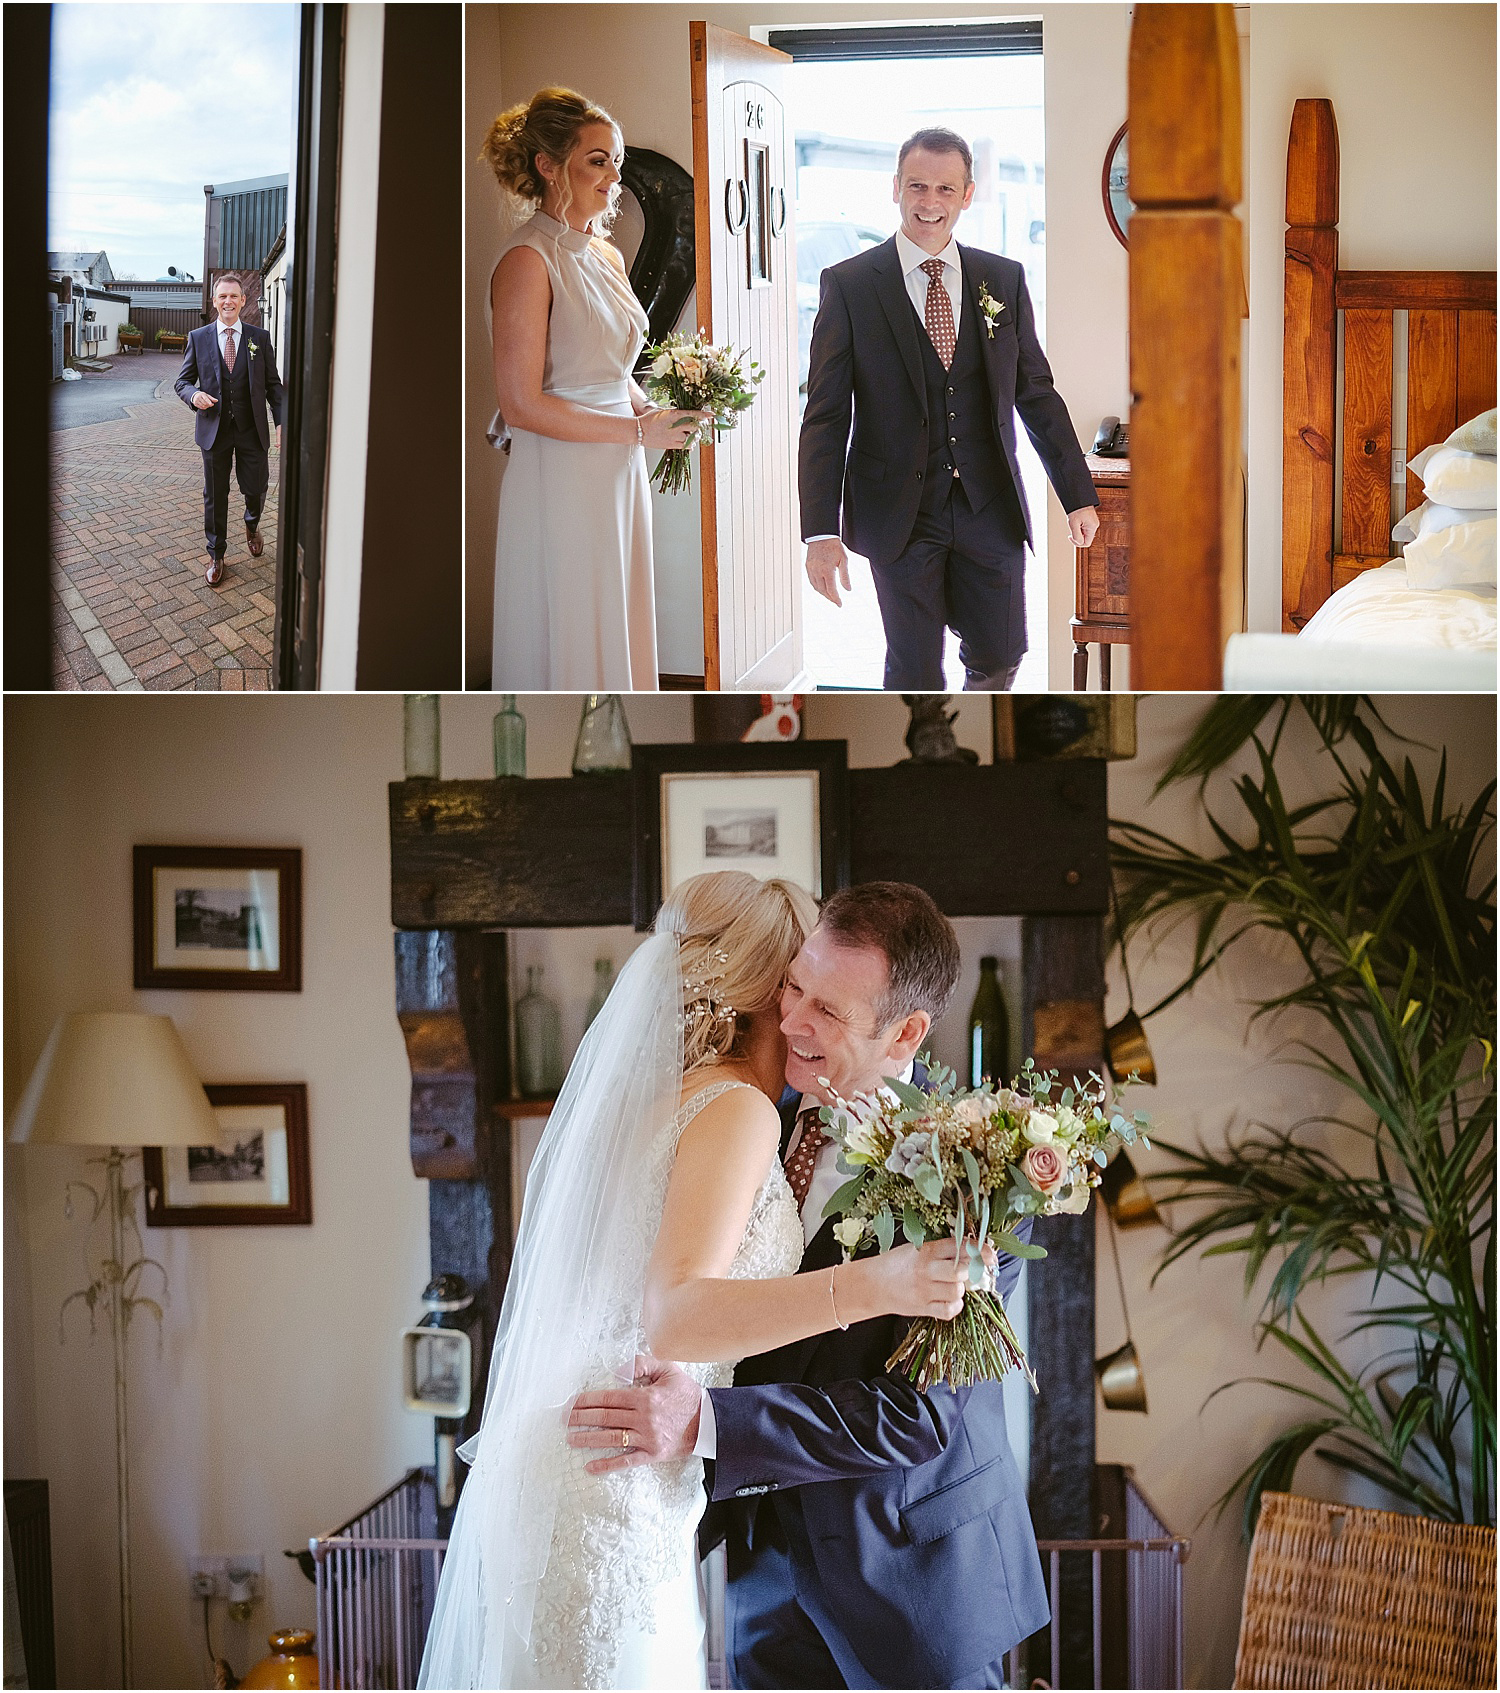 South Causey Inn wedding photography by 2tone Photography 012.jpg